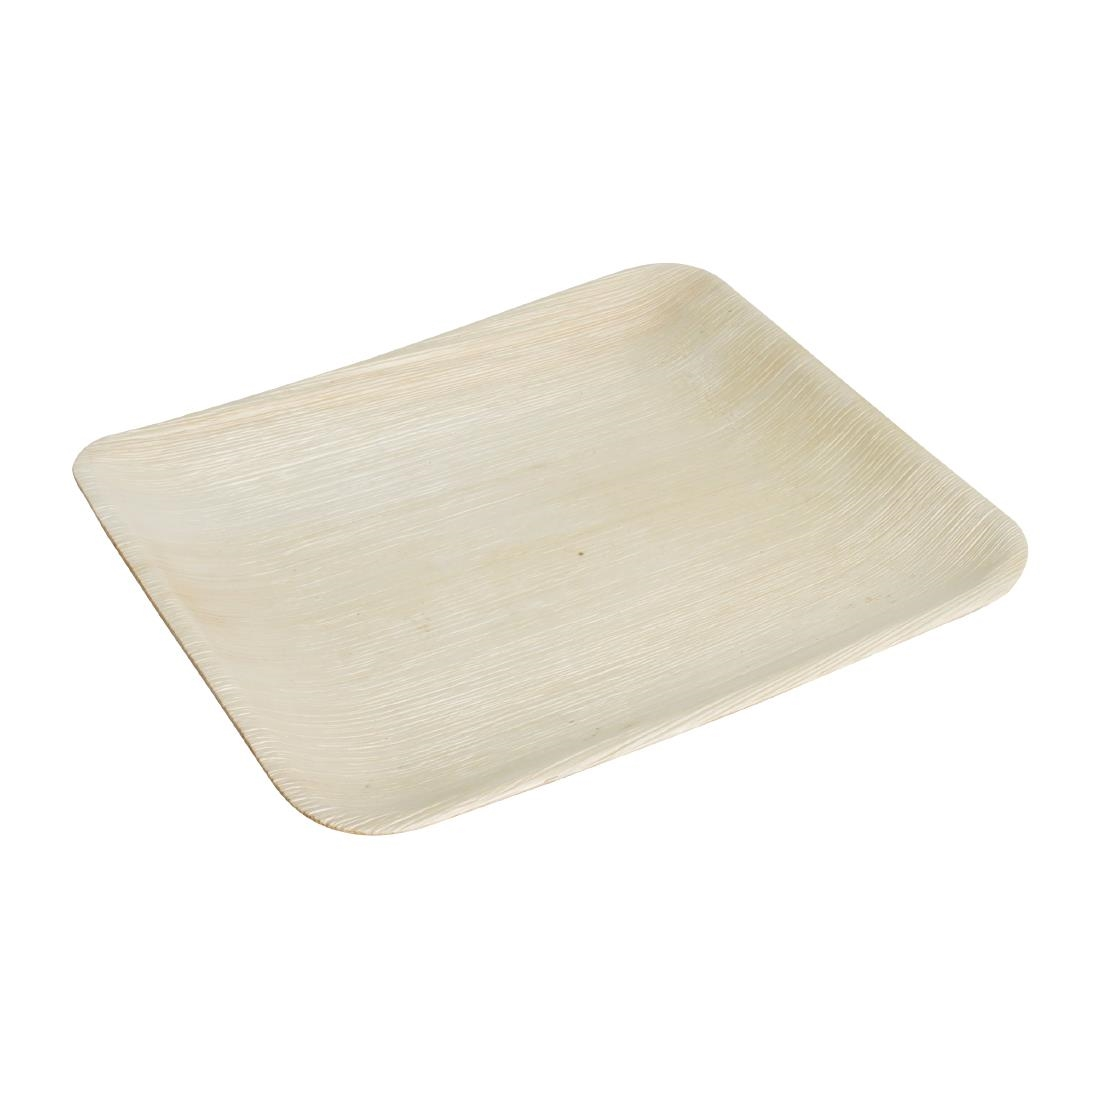 Fiesta Green Biodegradable Palm Leaf Square Plates 200mm Pack of 100